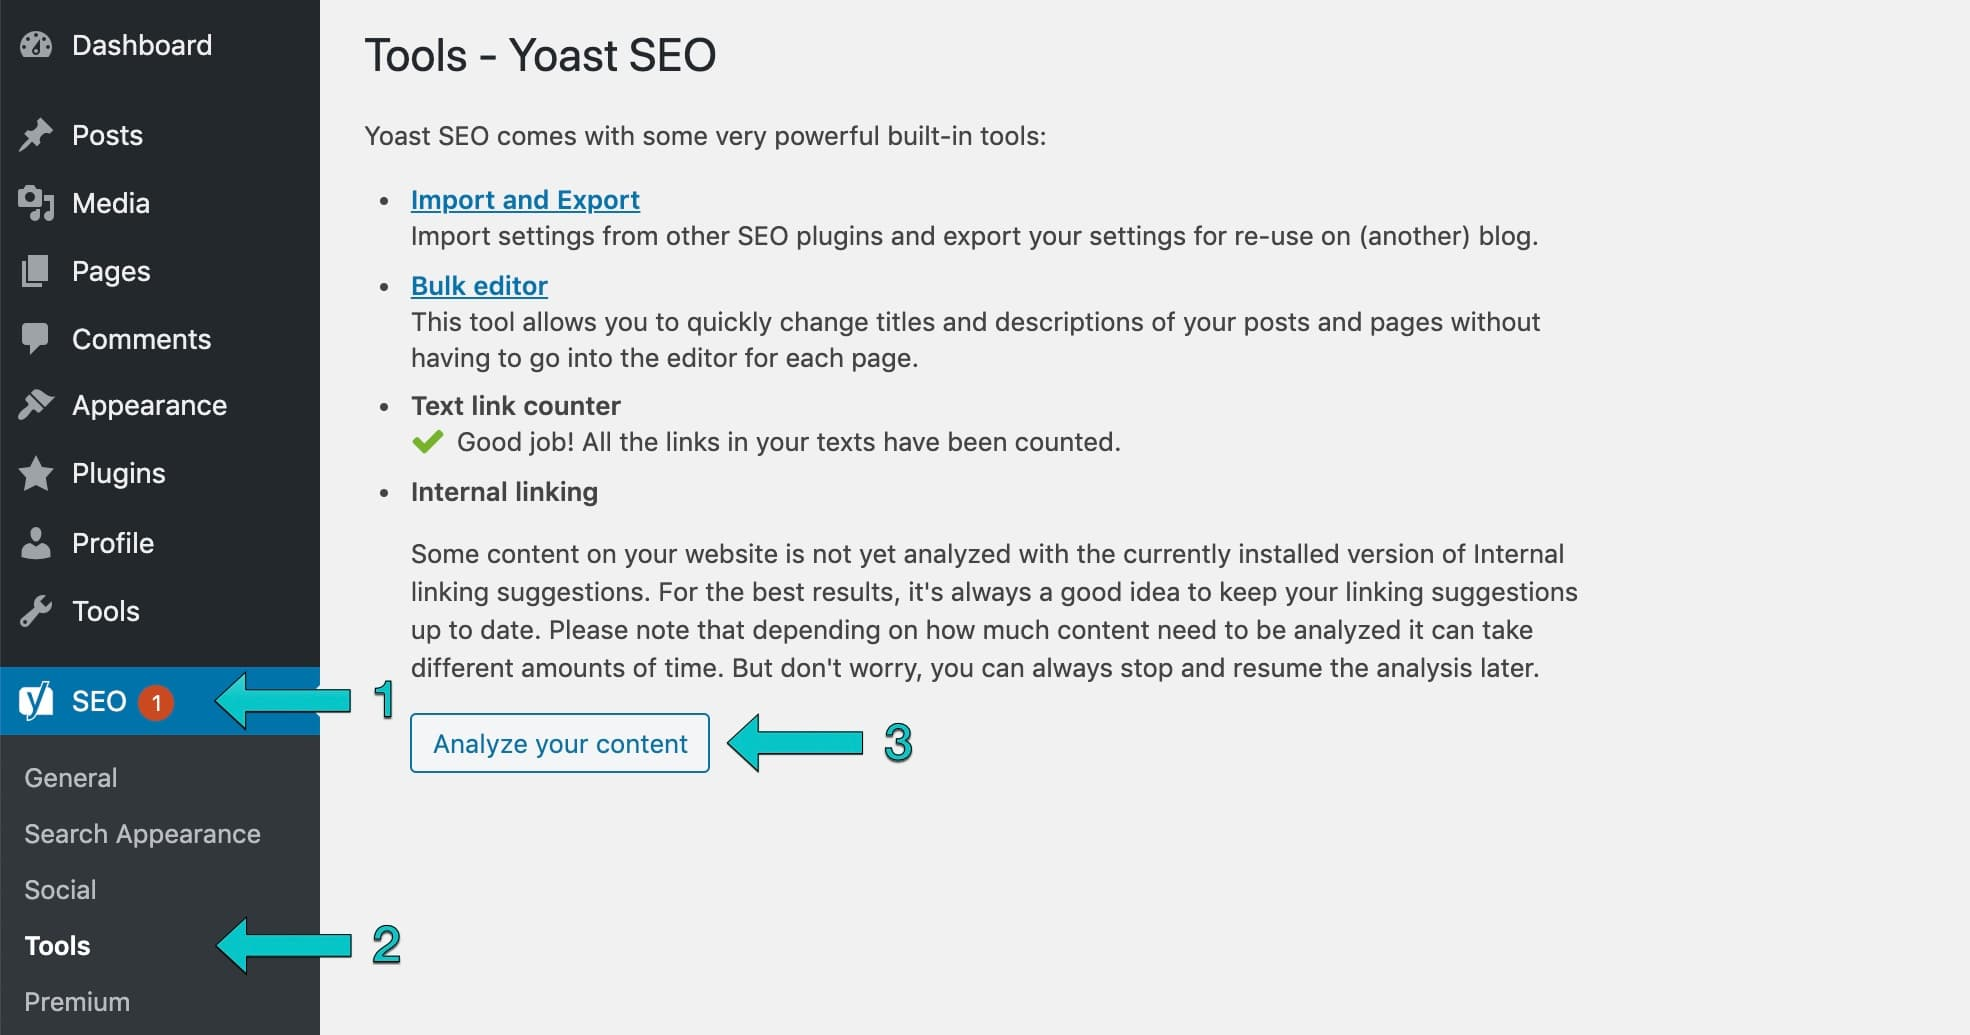 activate the internal linking tool by analyzing your content